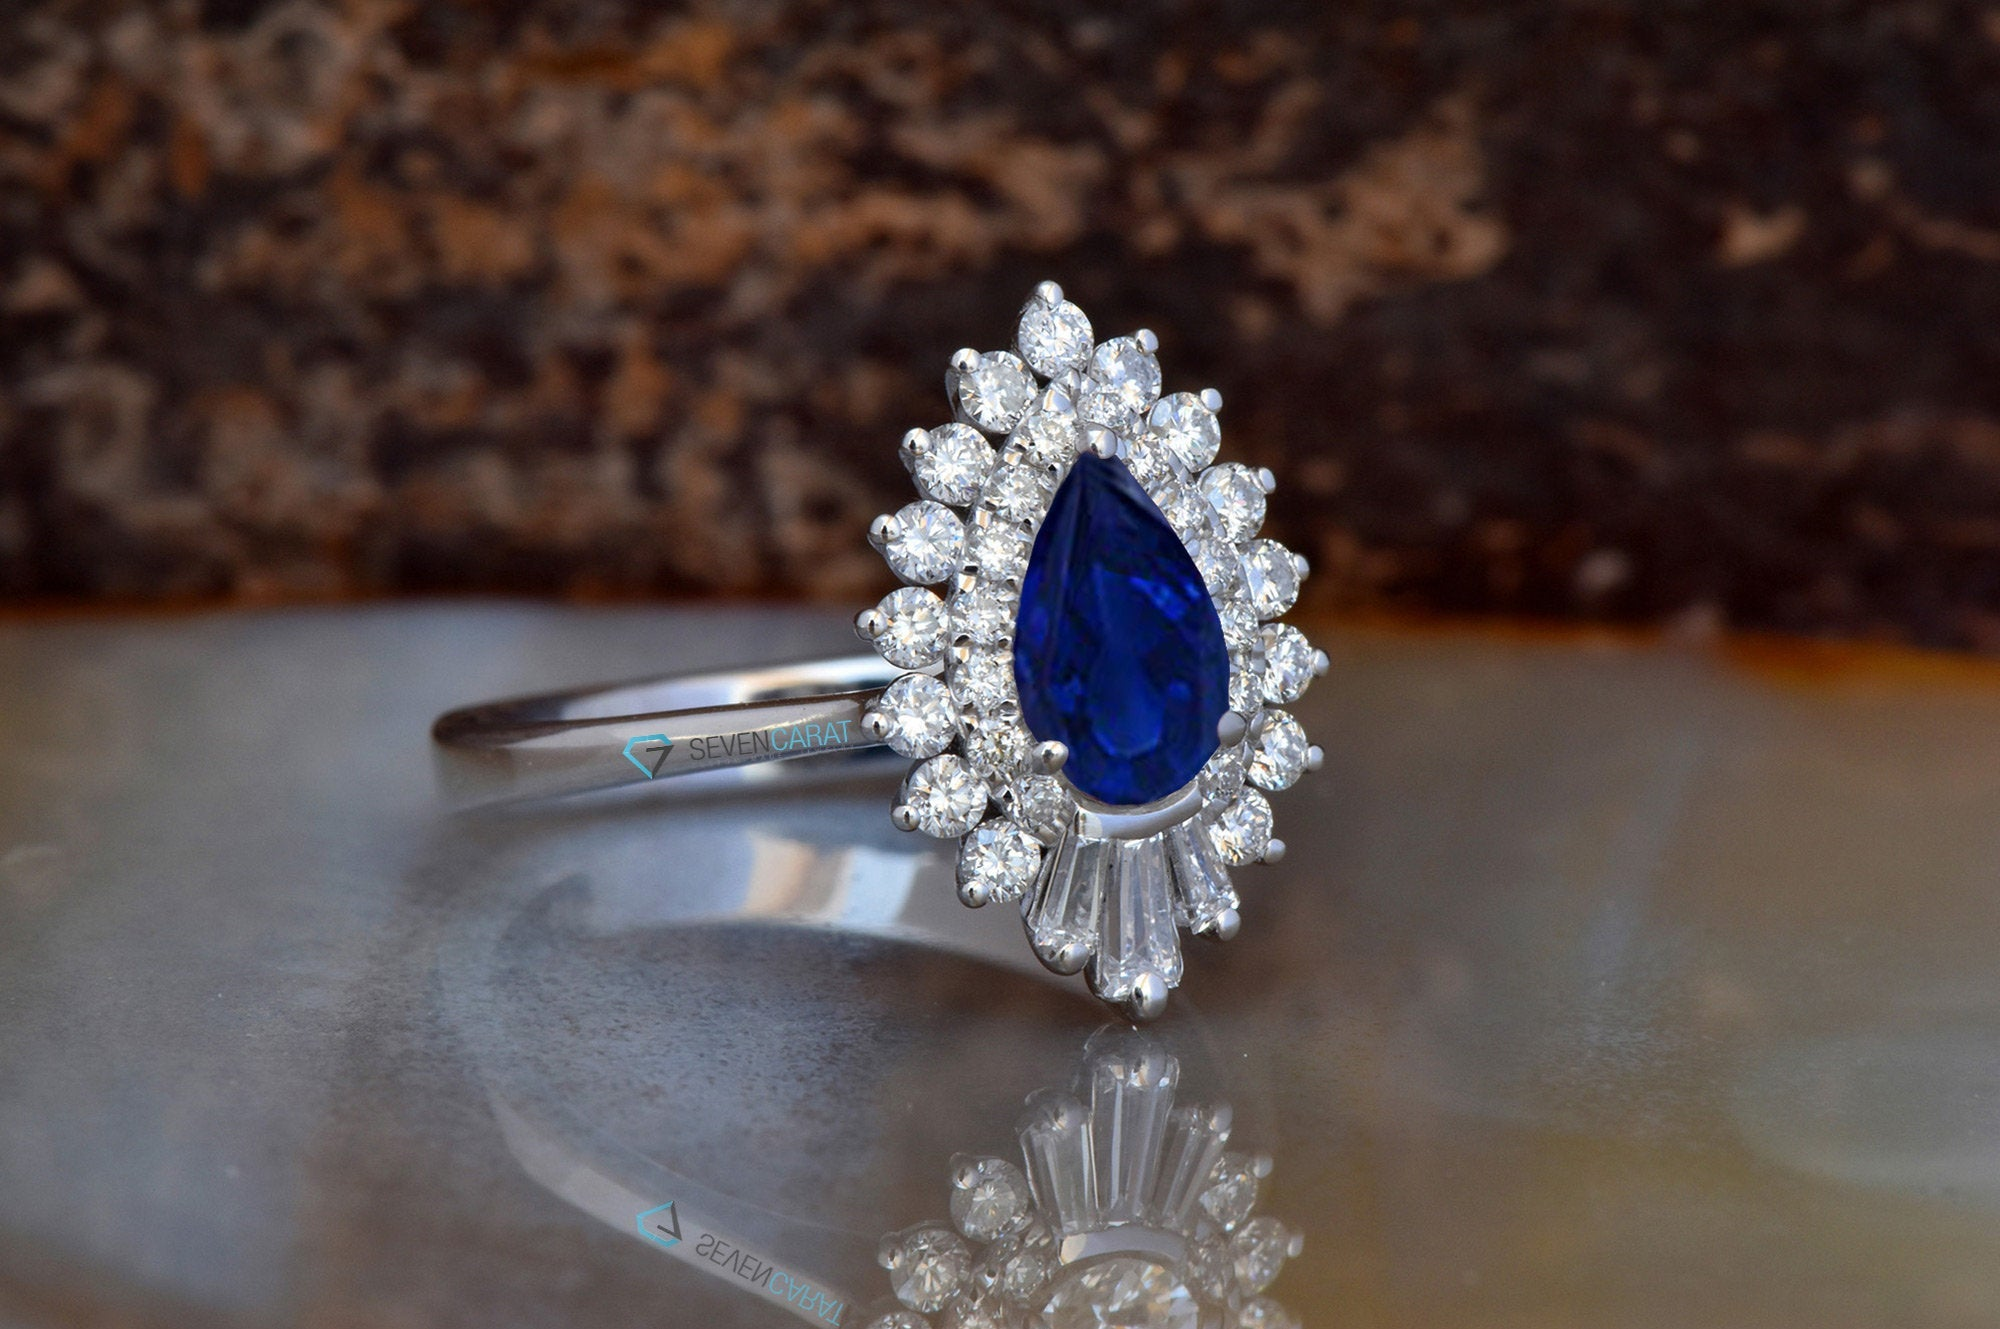 Gatsby Sapphire  engagement ring vintage-14K white Gold-Pear shaped diamond engagement ring-Art deco ring - SevenCarat